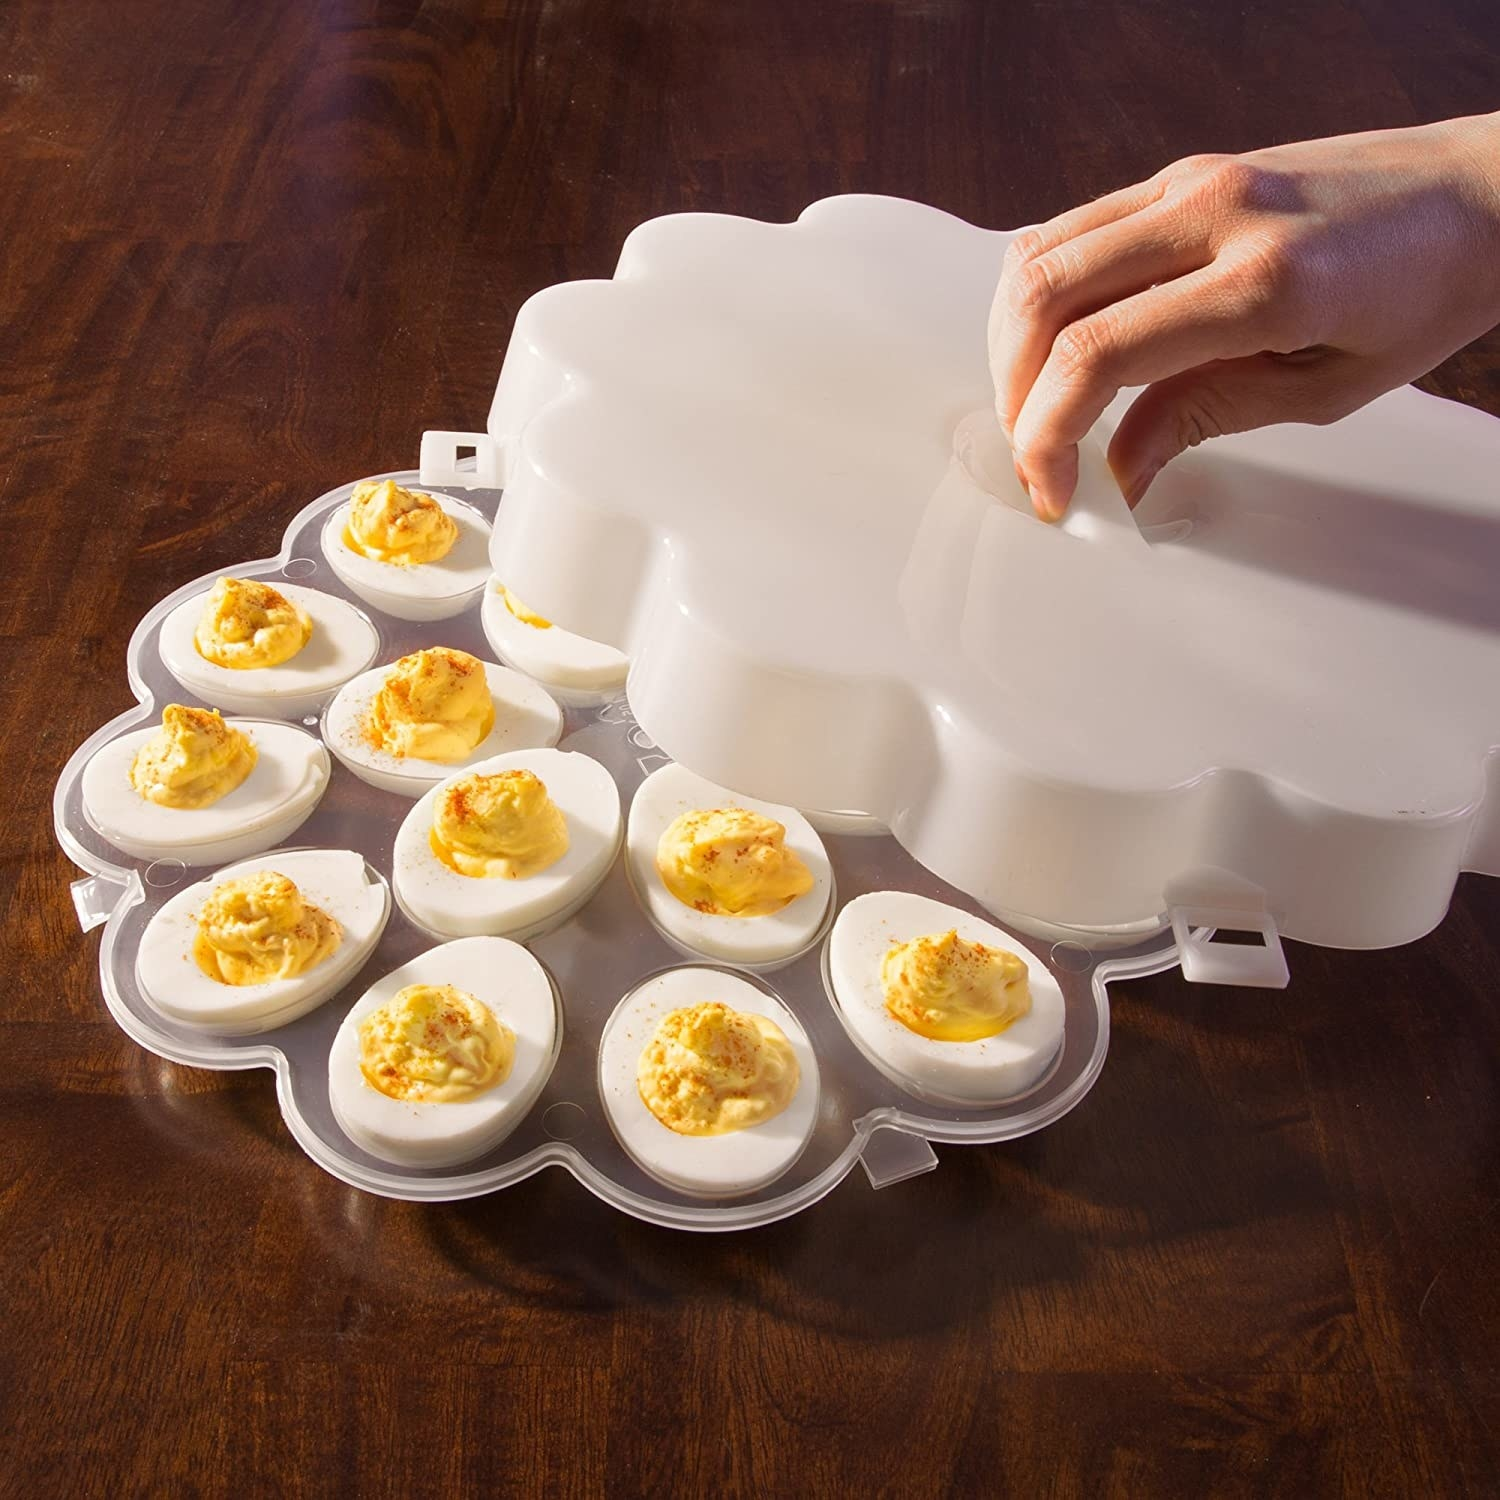 A person lifts the lid of the egg tray to show off a dozen perfectly crafted devilled eggs